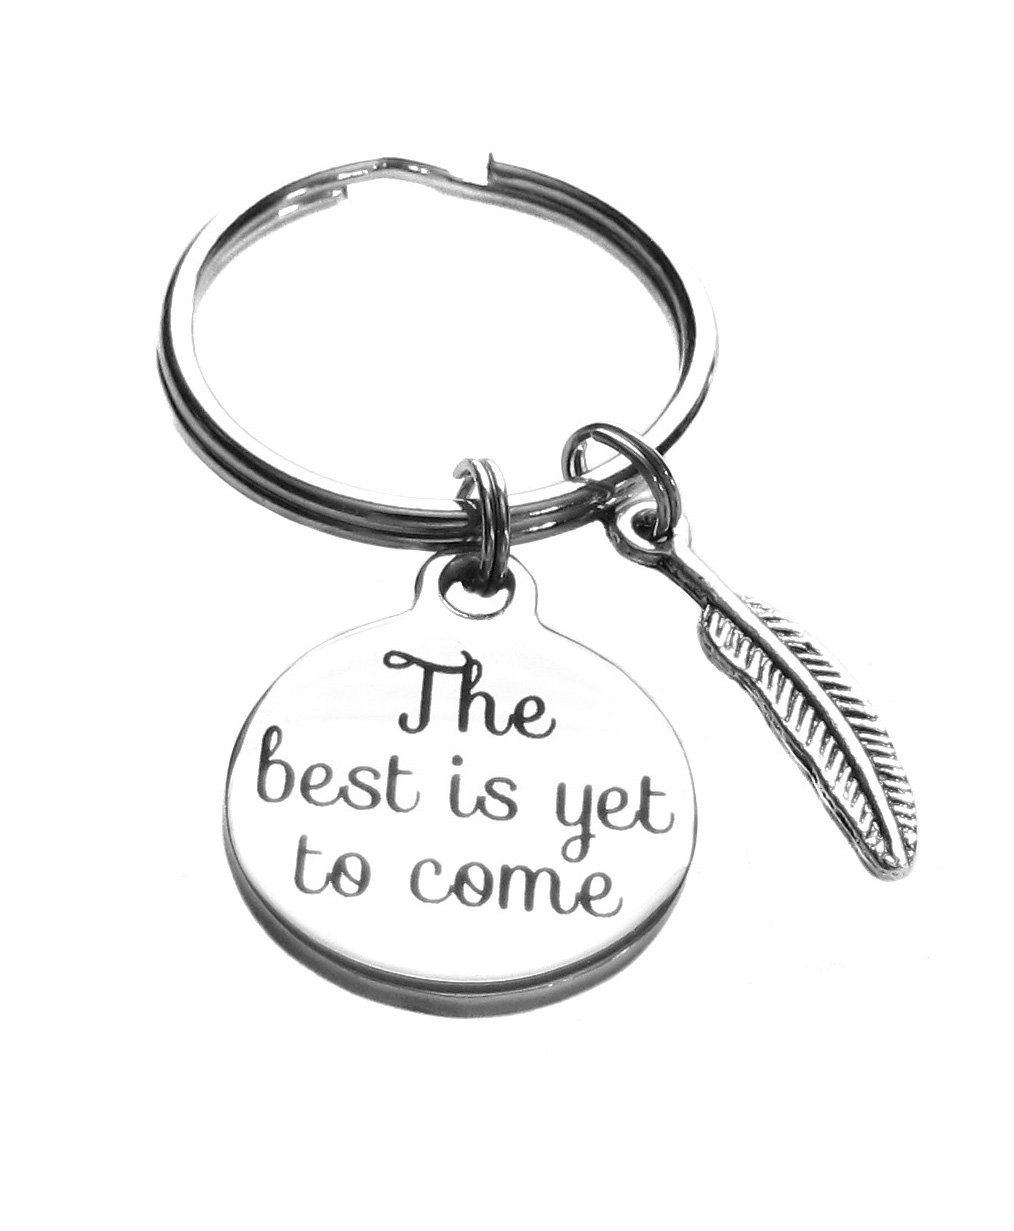 The Best is Yet to Come Feather Charms Keychain, Bag Charm, Inspirational Gift